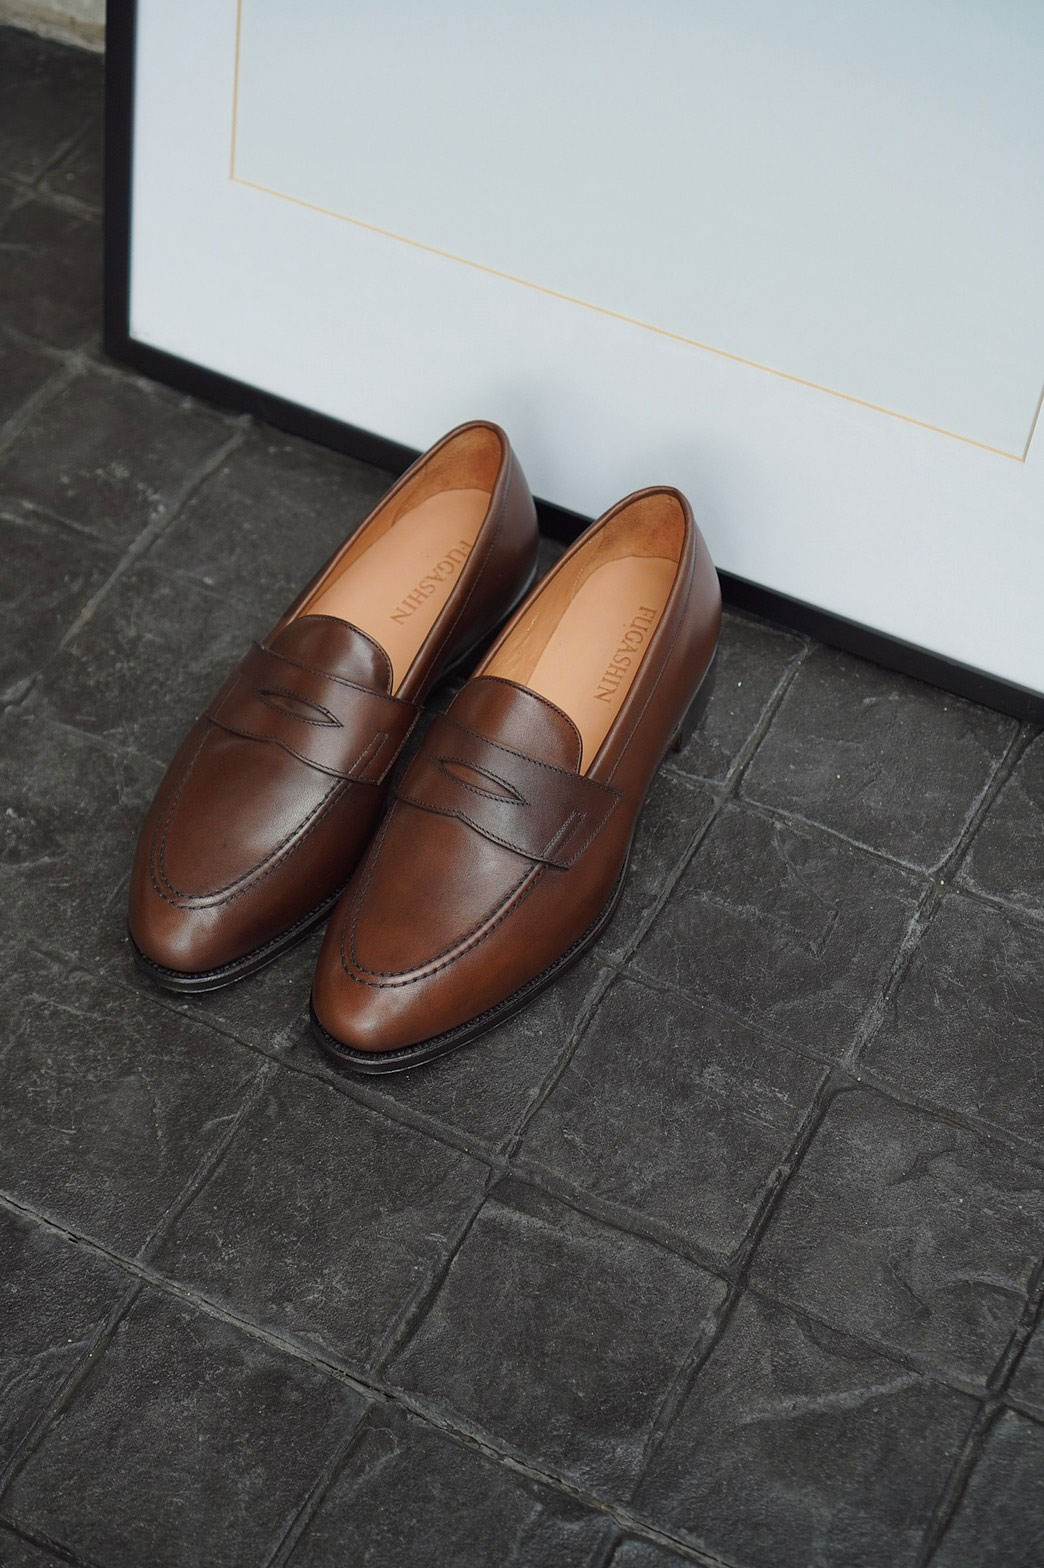 Fugashin New Last Penny Loafers - Brown